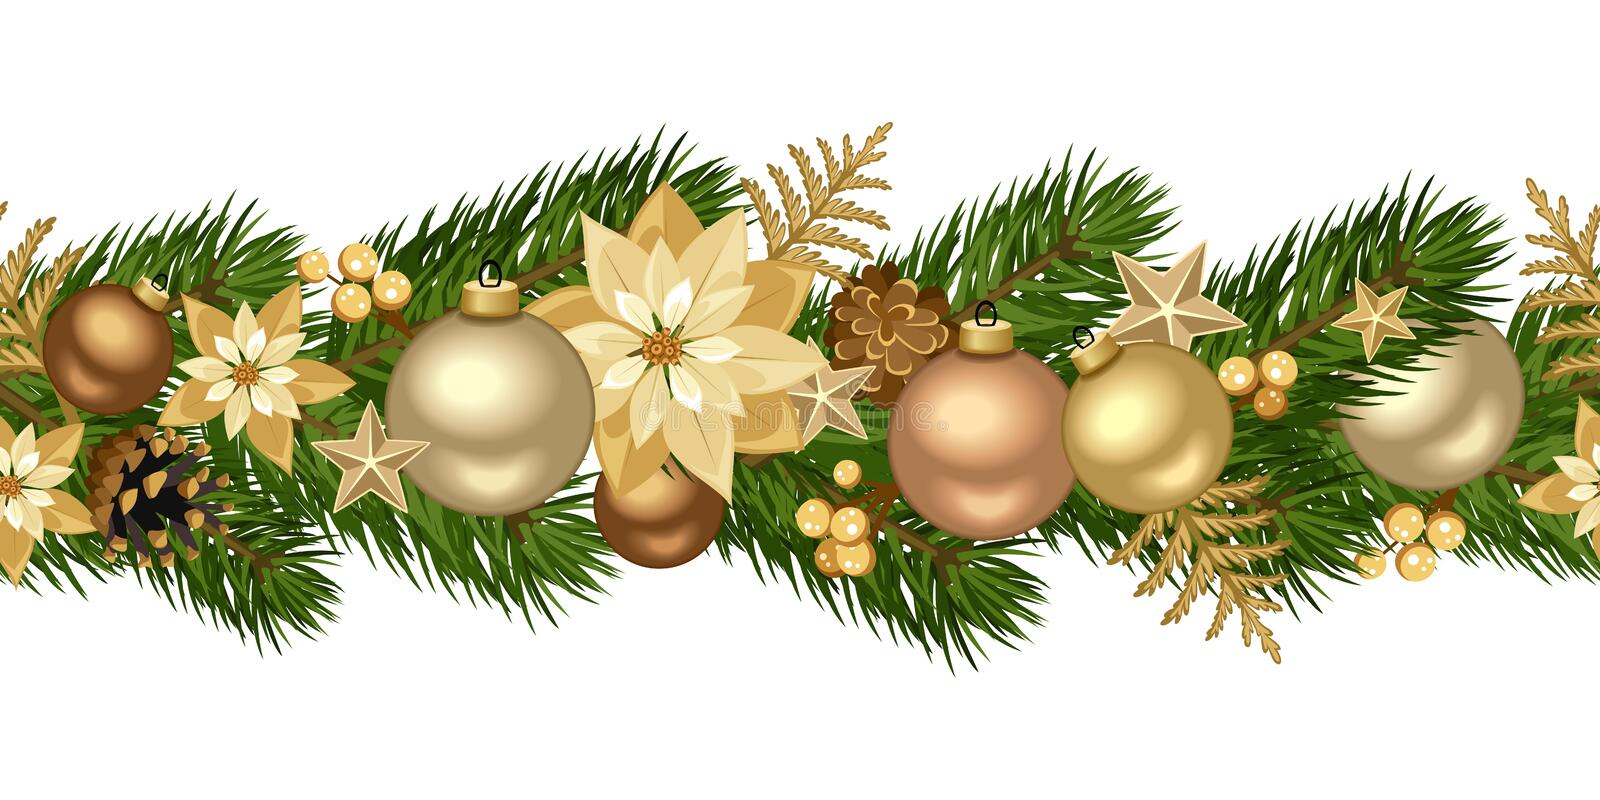 Download Christmas Horizontal Seamless Background. Stock Vector - Image: 35493523